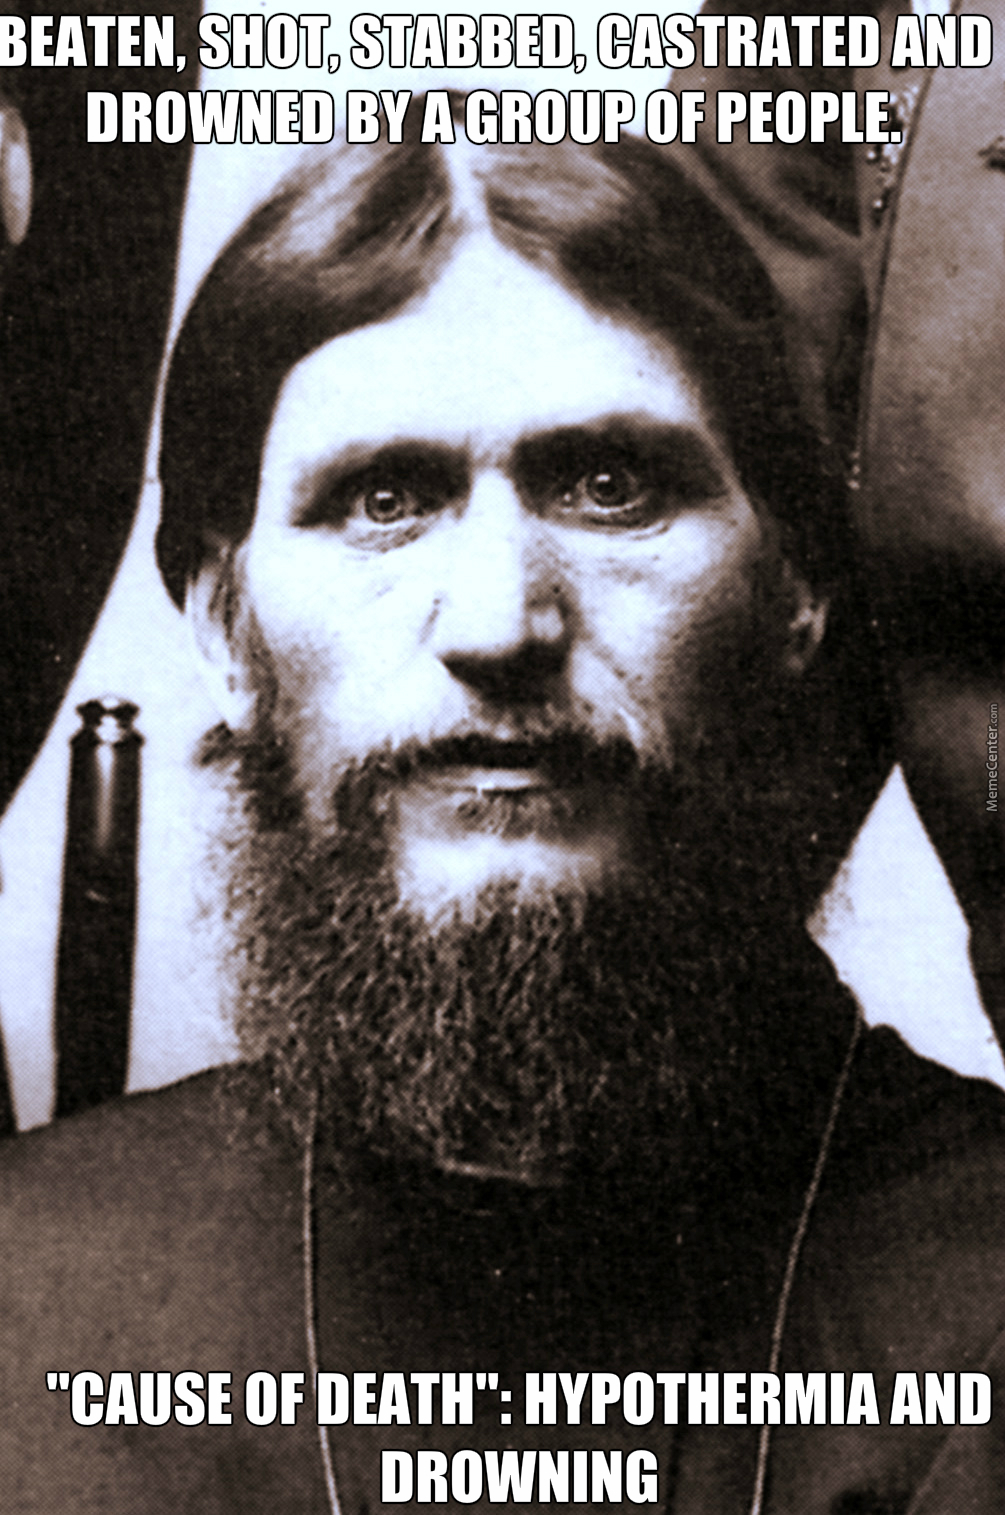 rasputin is da man_o_3127837 rasputin is da man by sir_applepie meme center